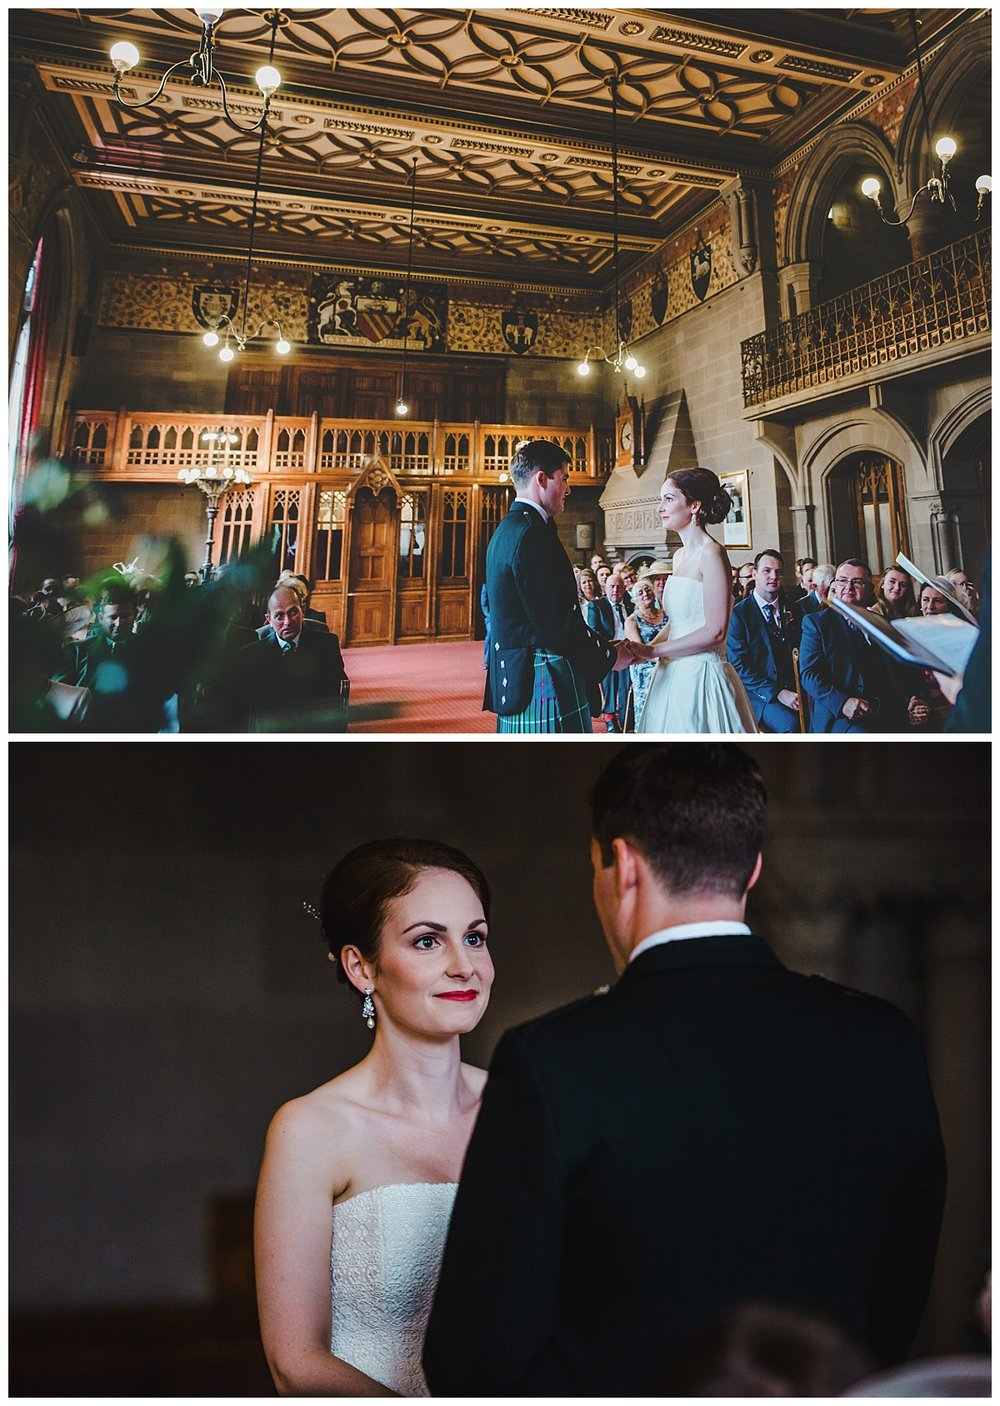 Bride and groom saying their vows - manchester town hall wedding ceremony.